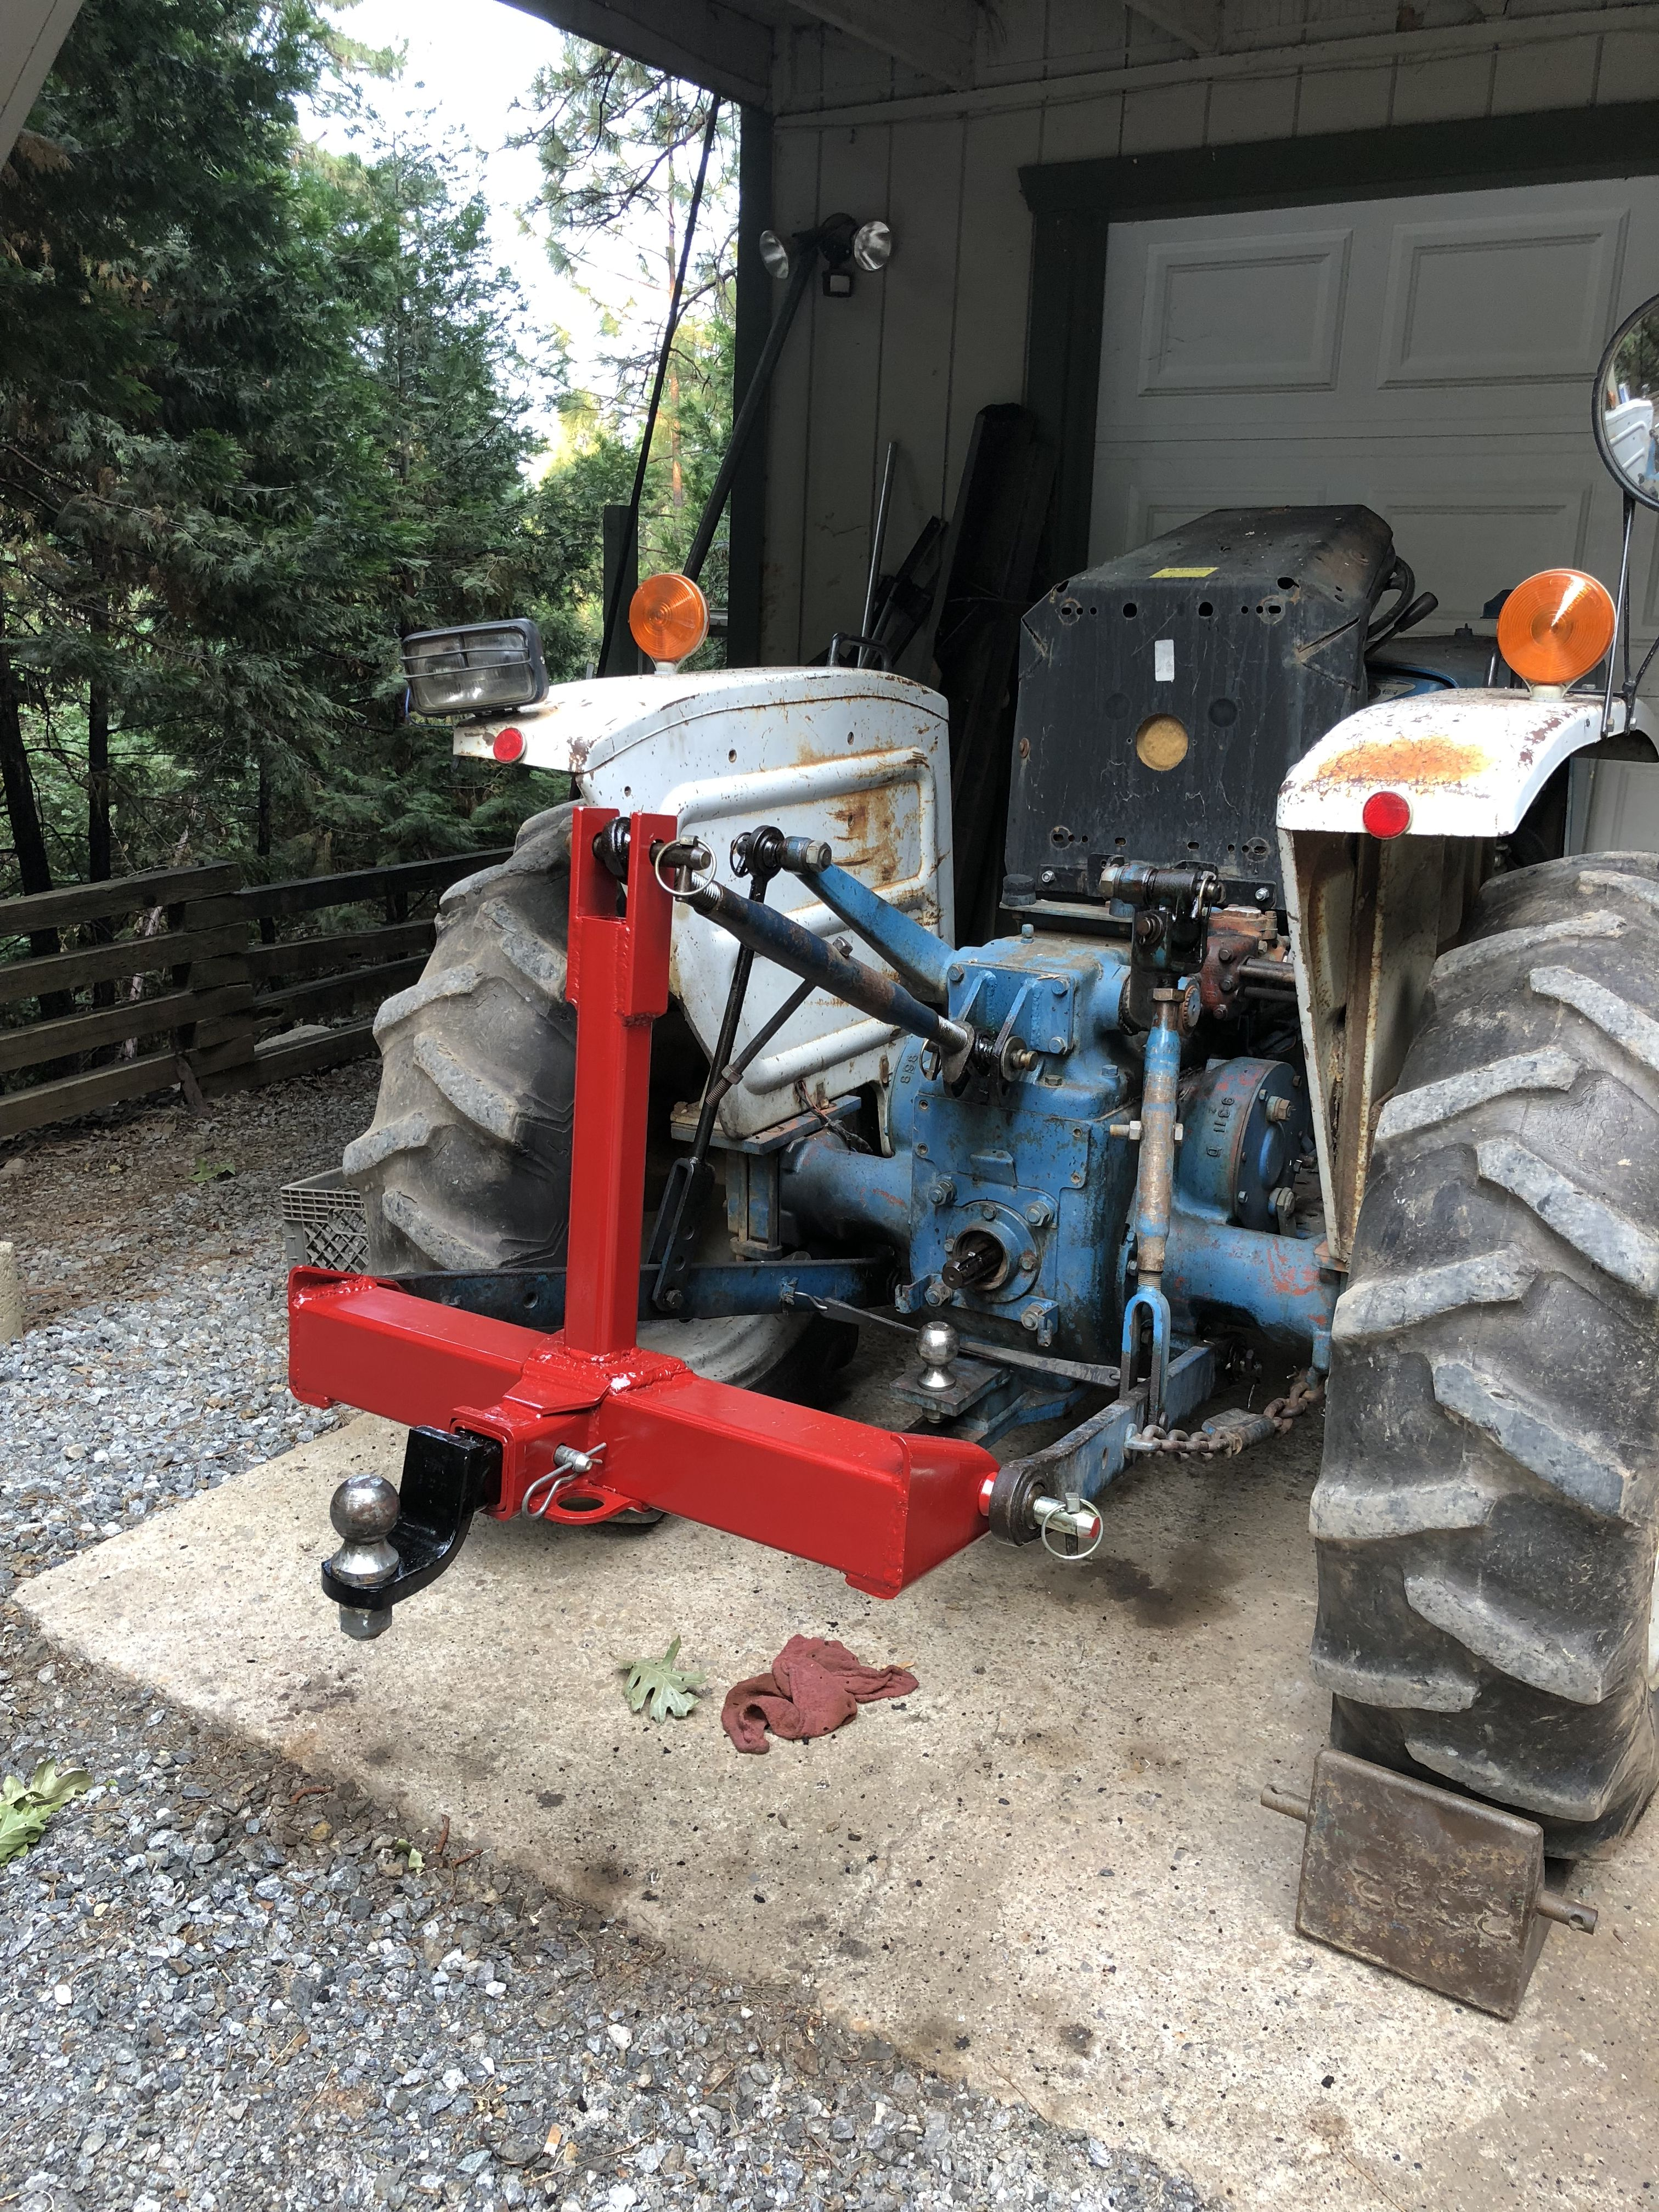 Pin By Cody Cole On 3 Point Receiver For Tractors Tractors Tractor Implements Homemade Tractor